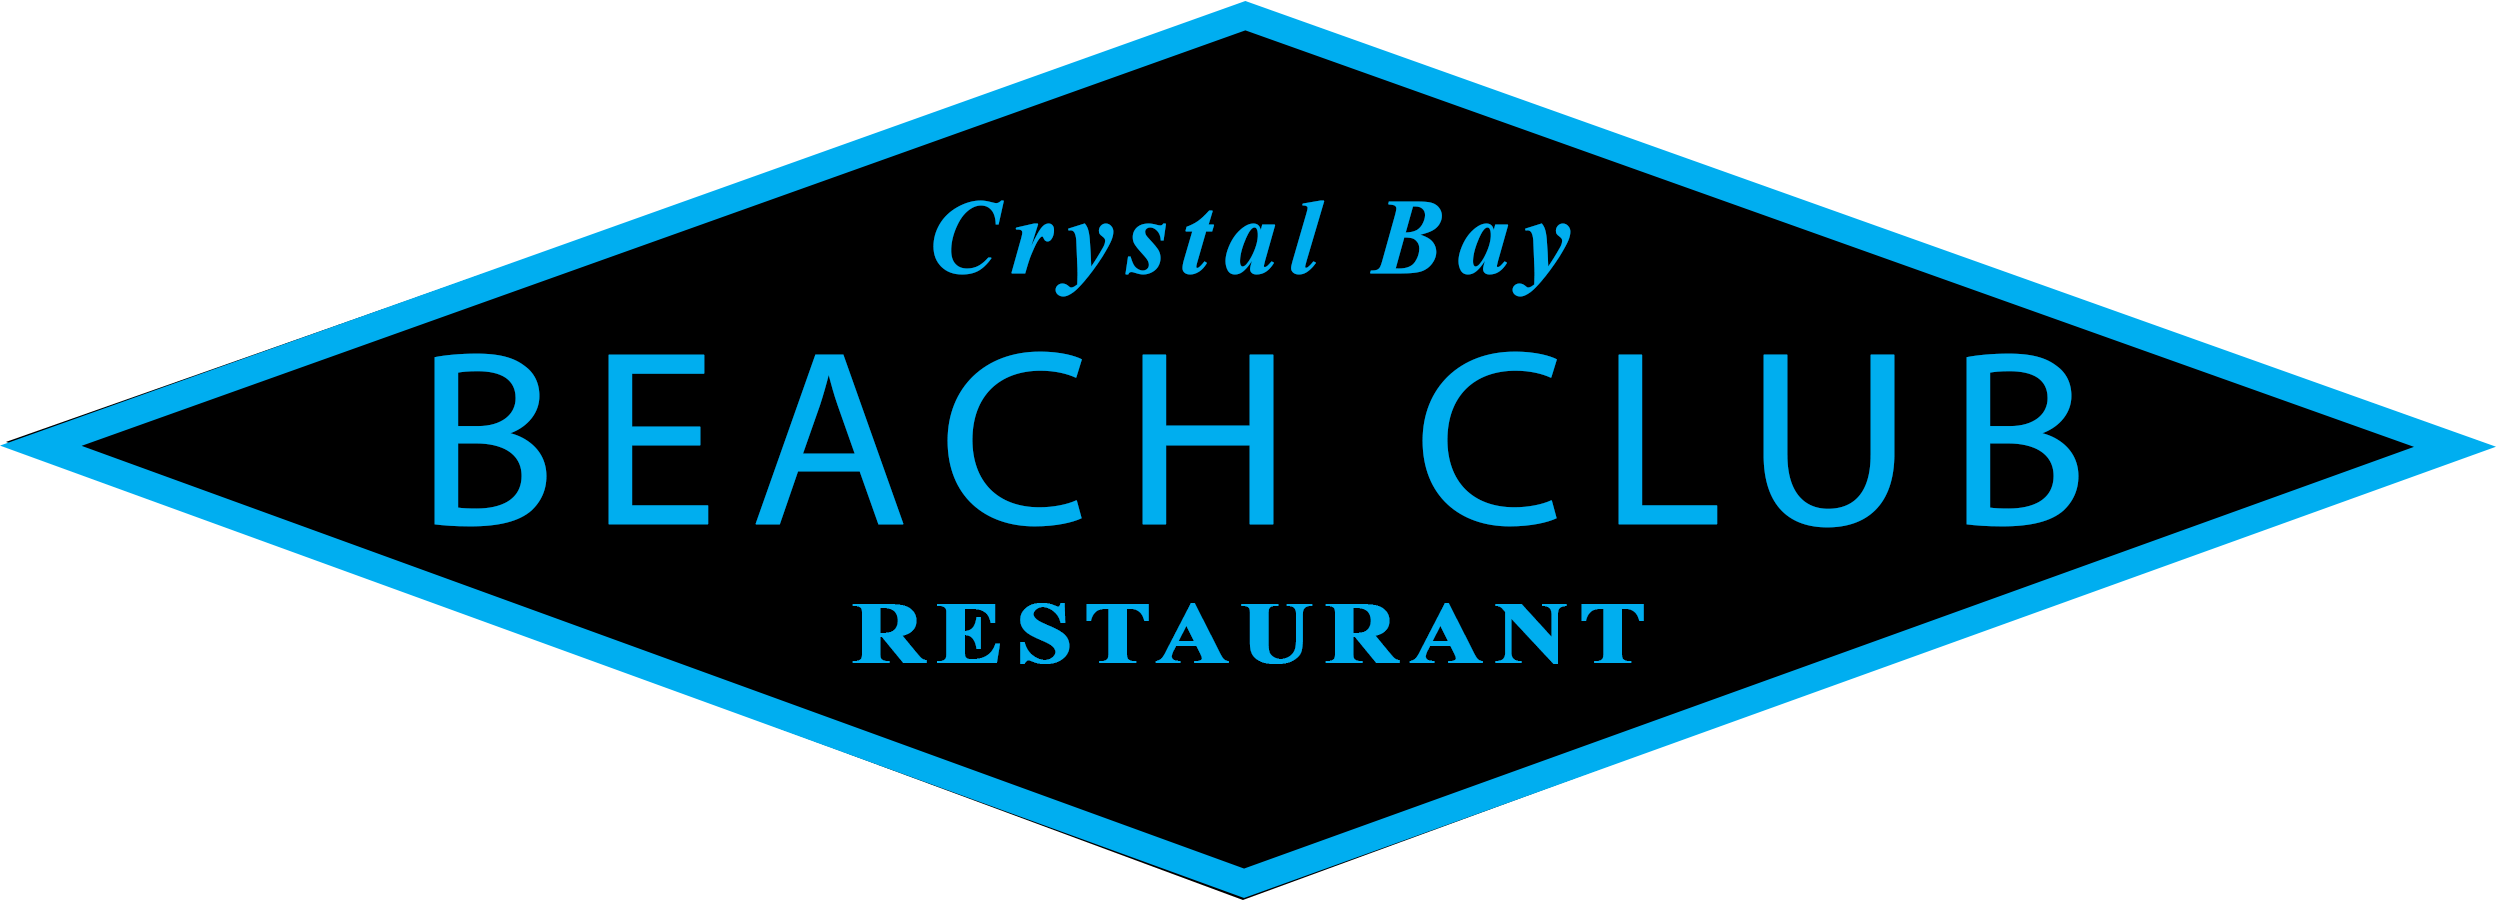 Crystal Bay Beach Club Koh Samui Thailand